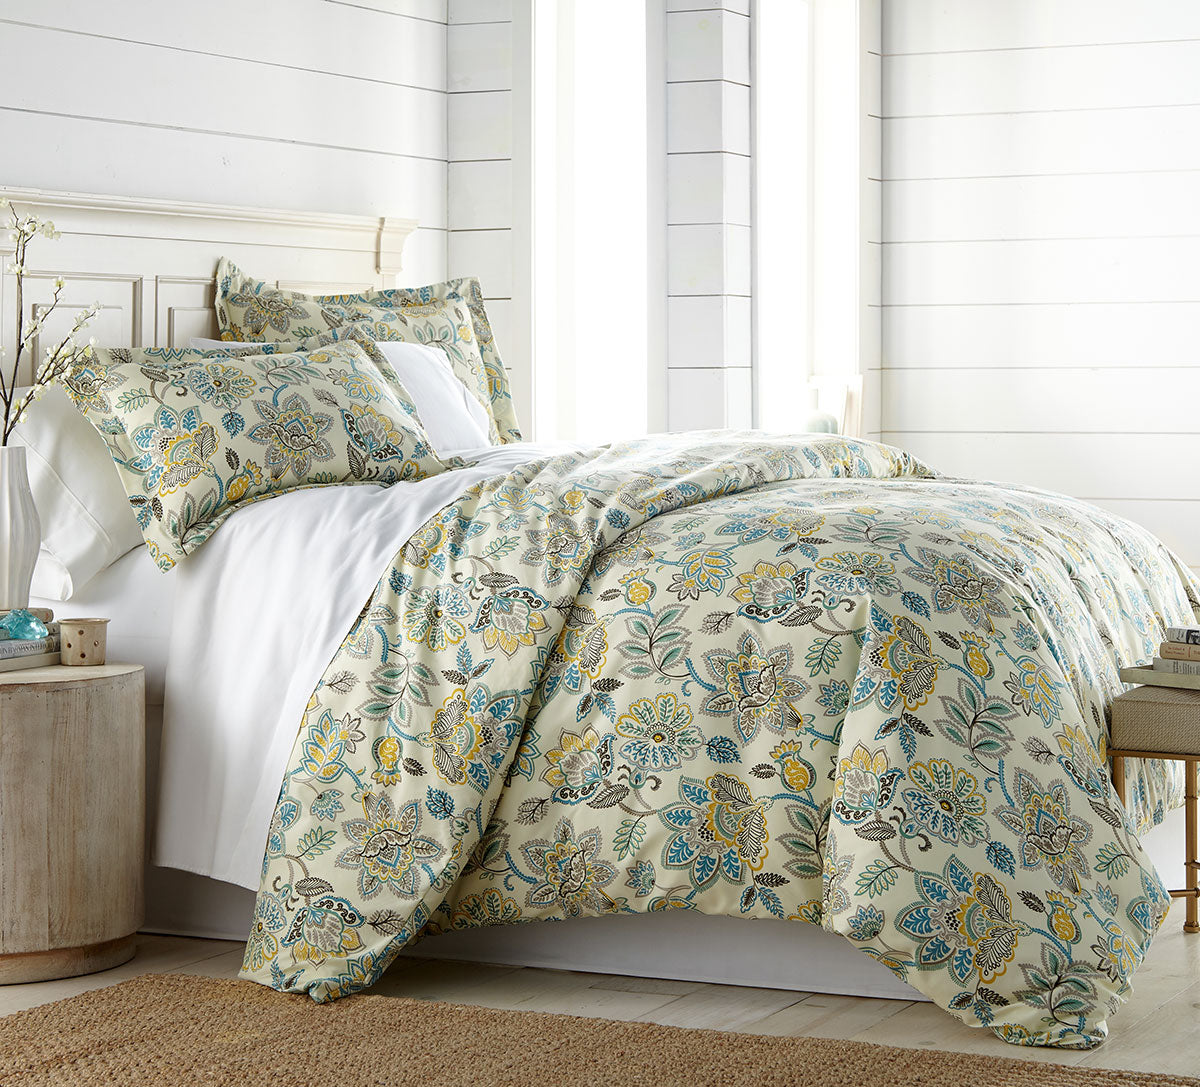 cream comforter with floral pattern